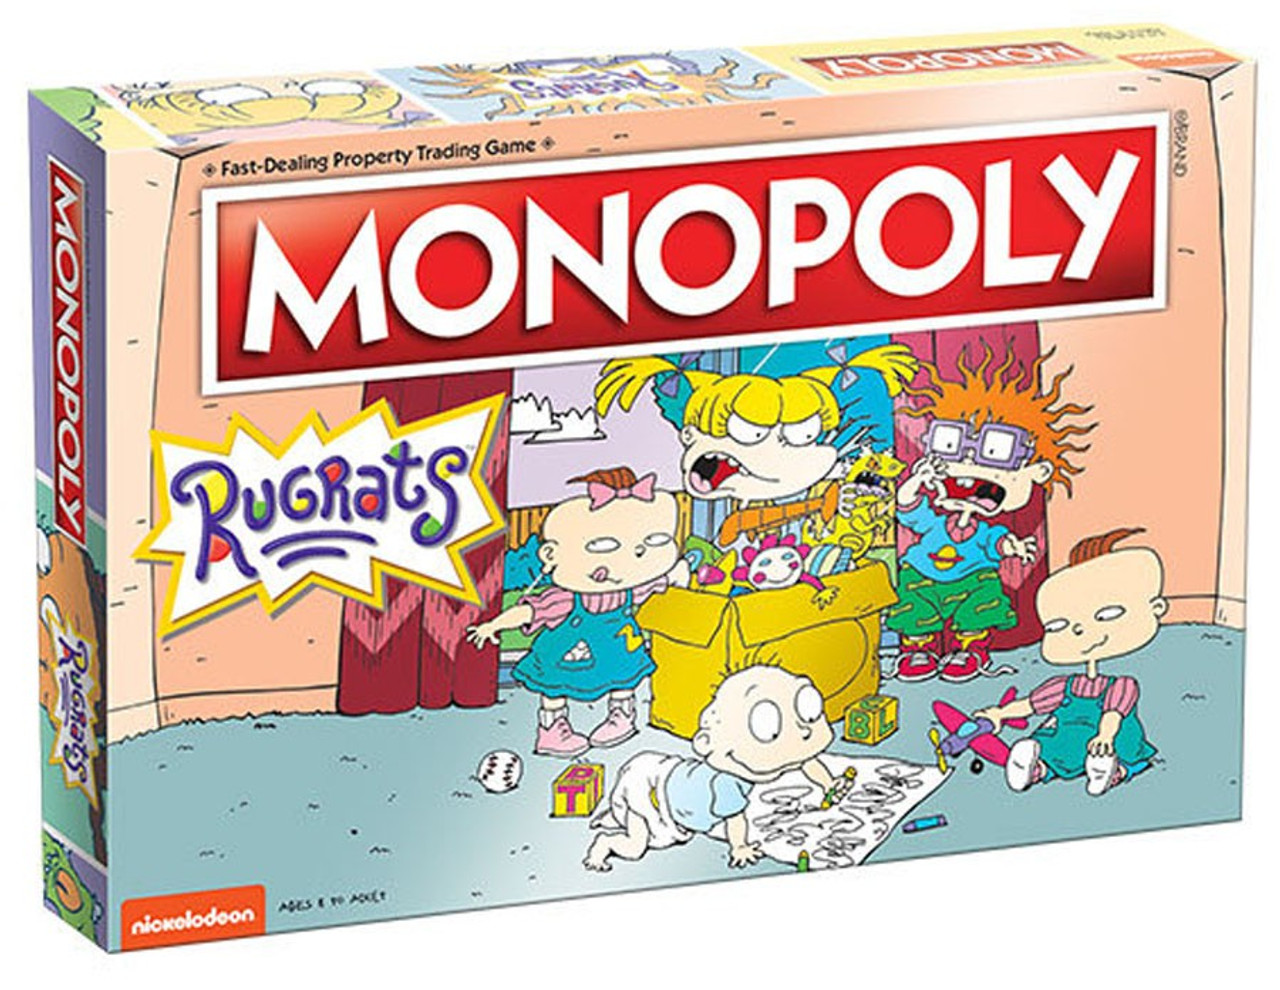 Monopoly Rugrats Board Game (Pre-Order ships August)